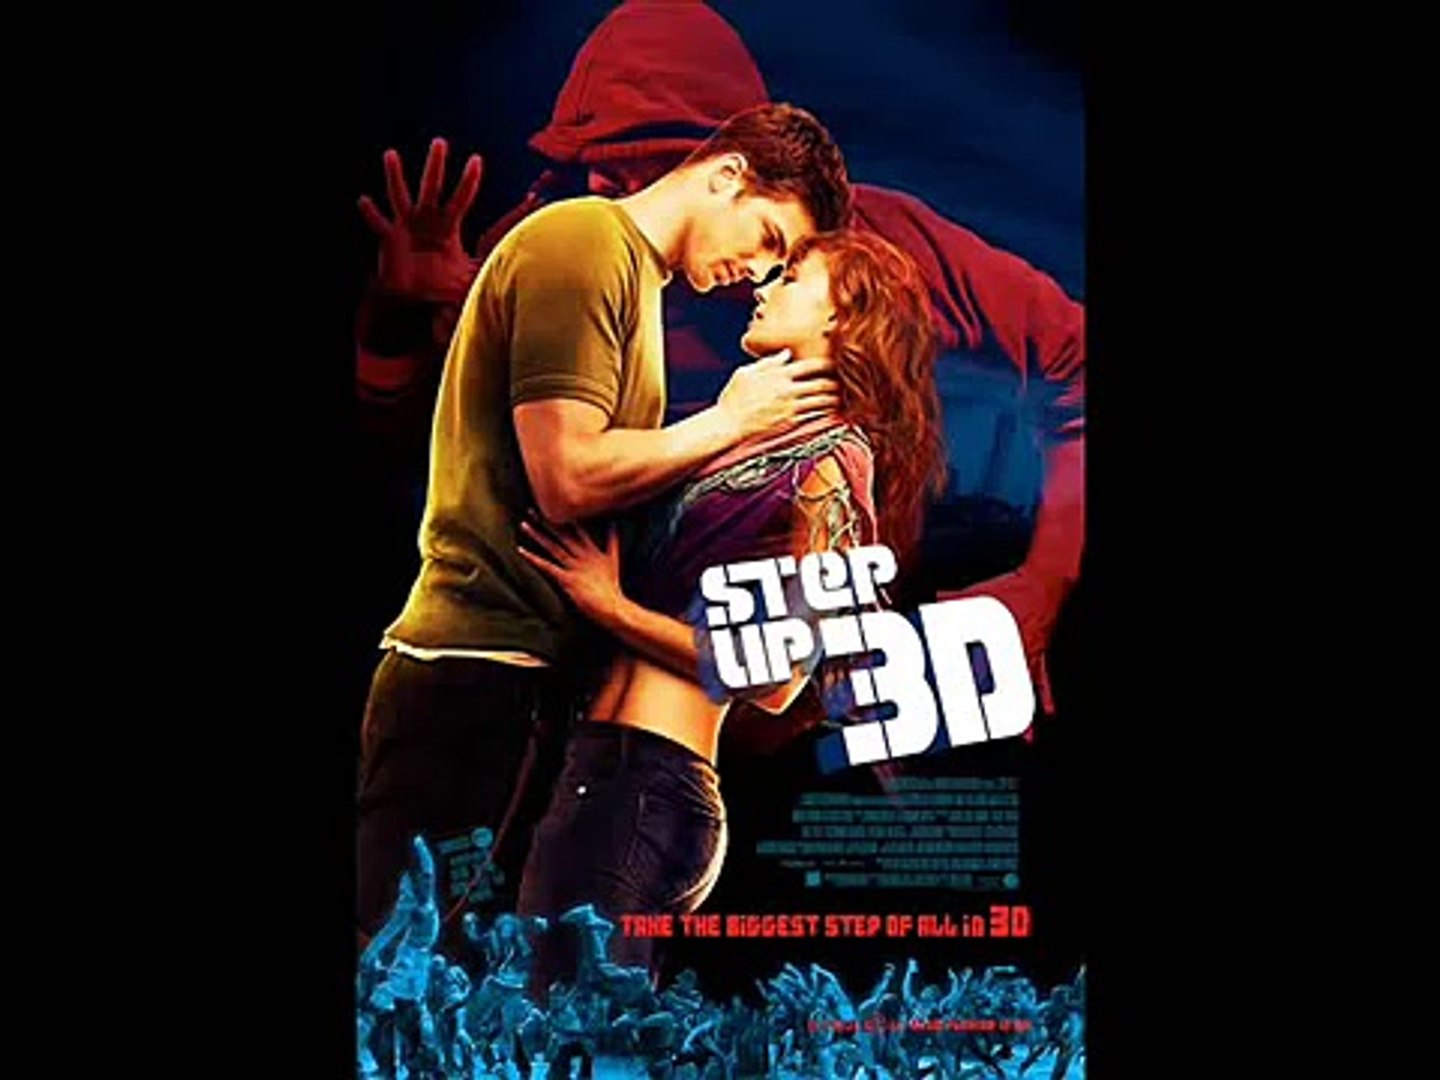 12 Busta Rhymes Tear Da Roof Off Step Up 3d Video Dailymotion